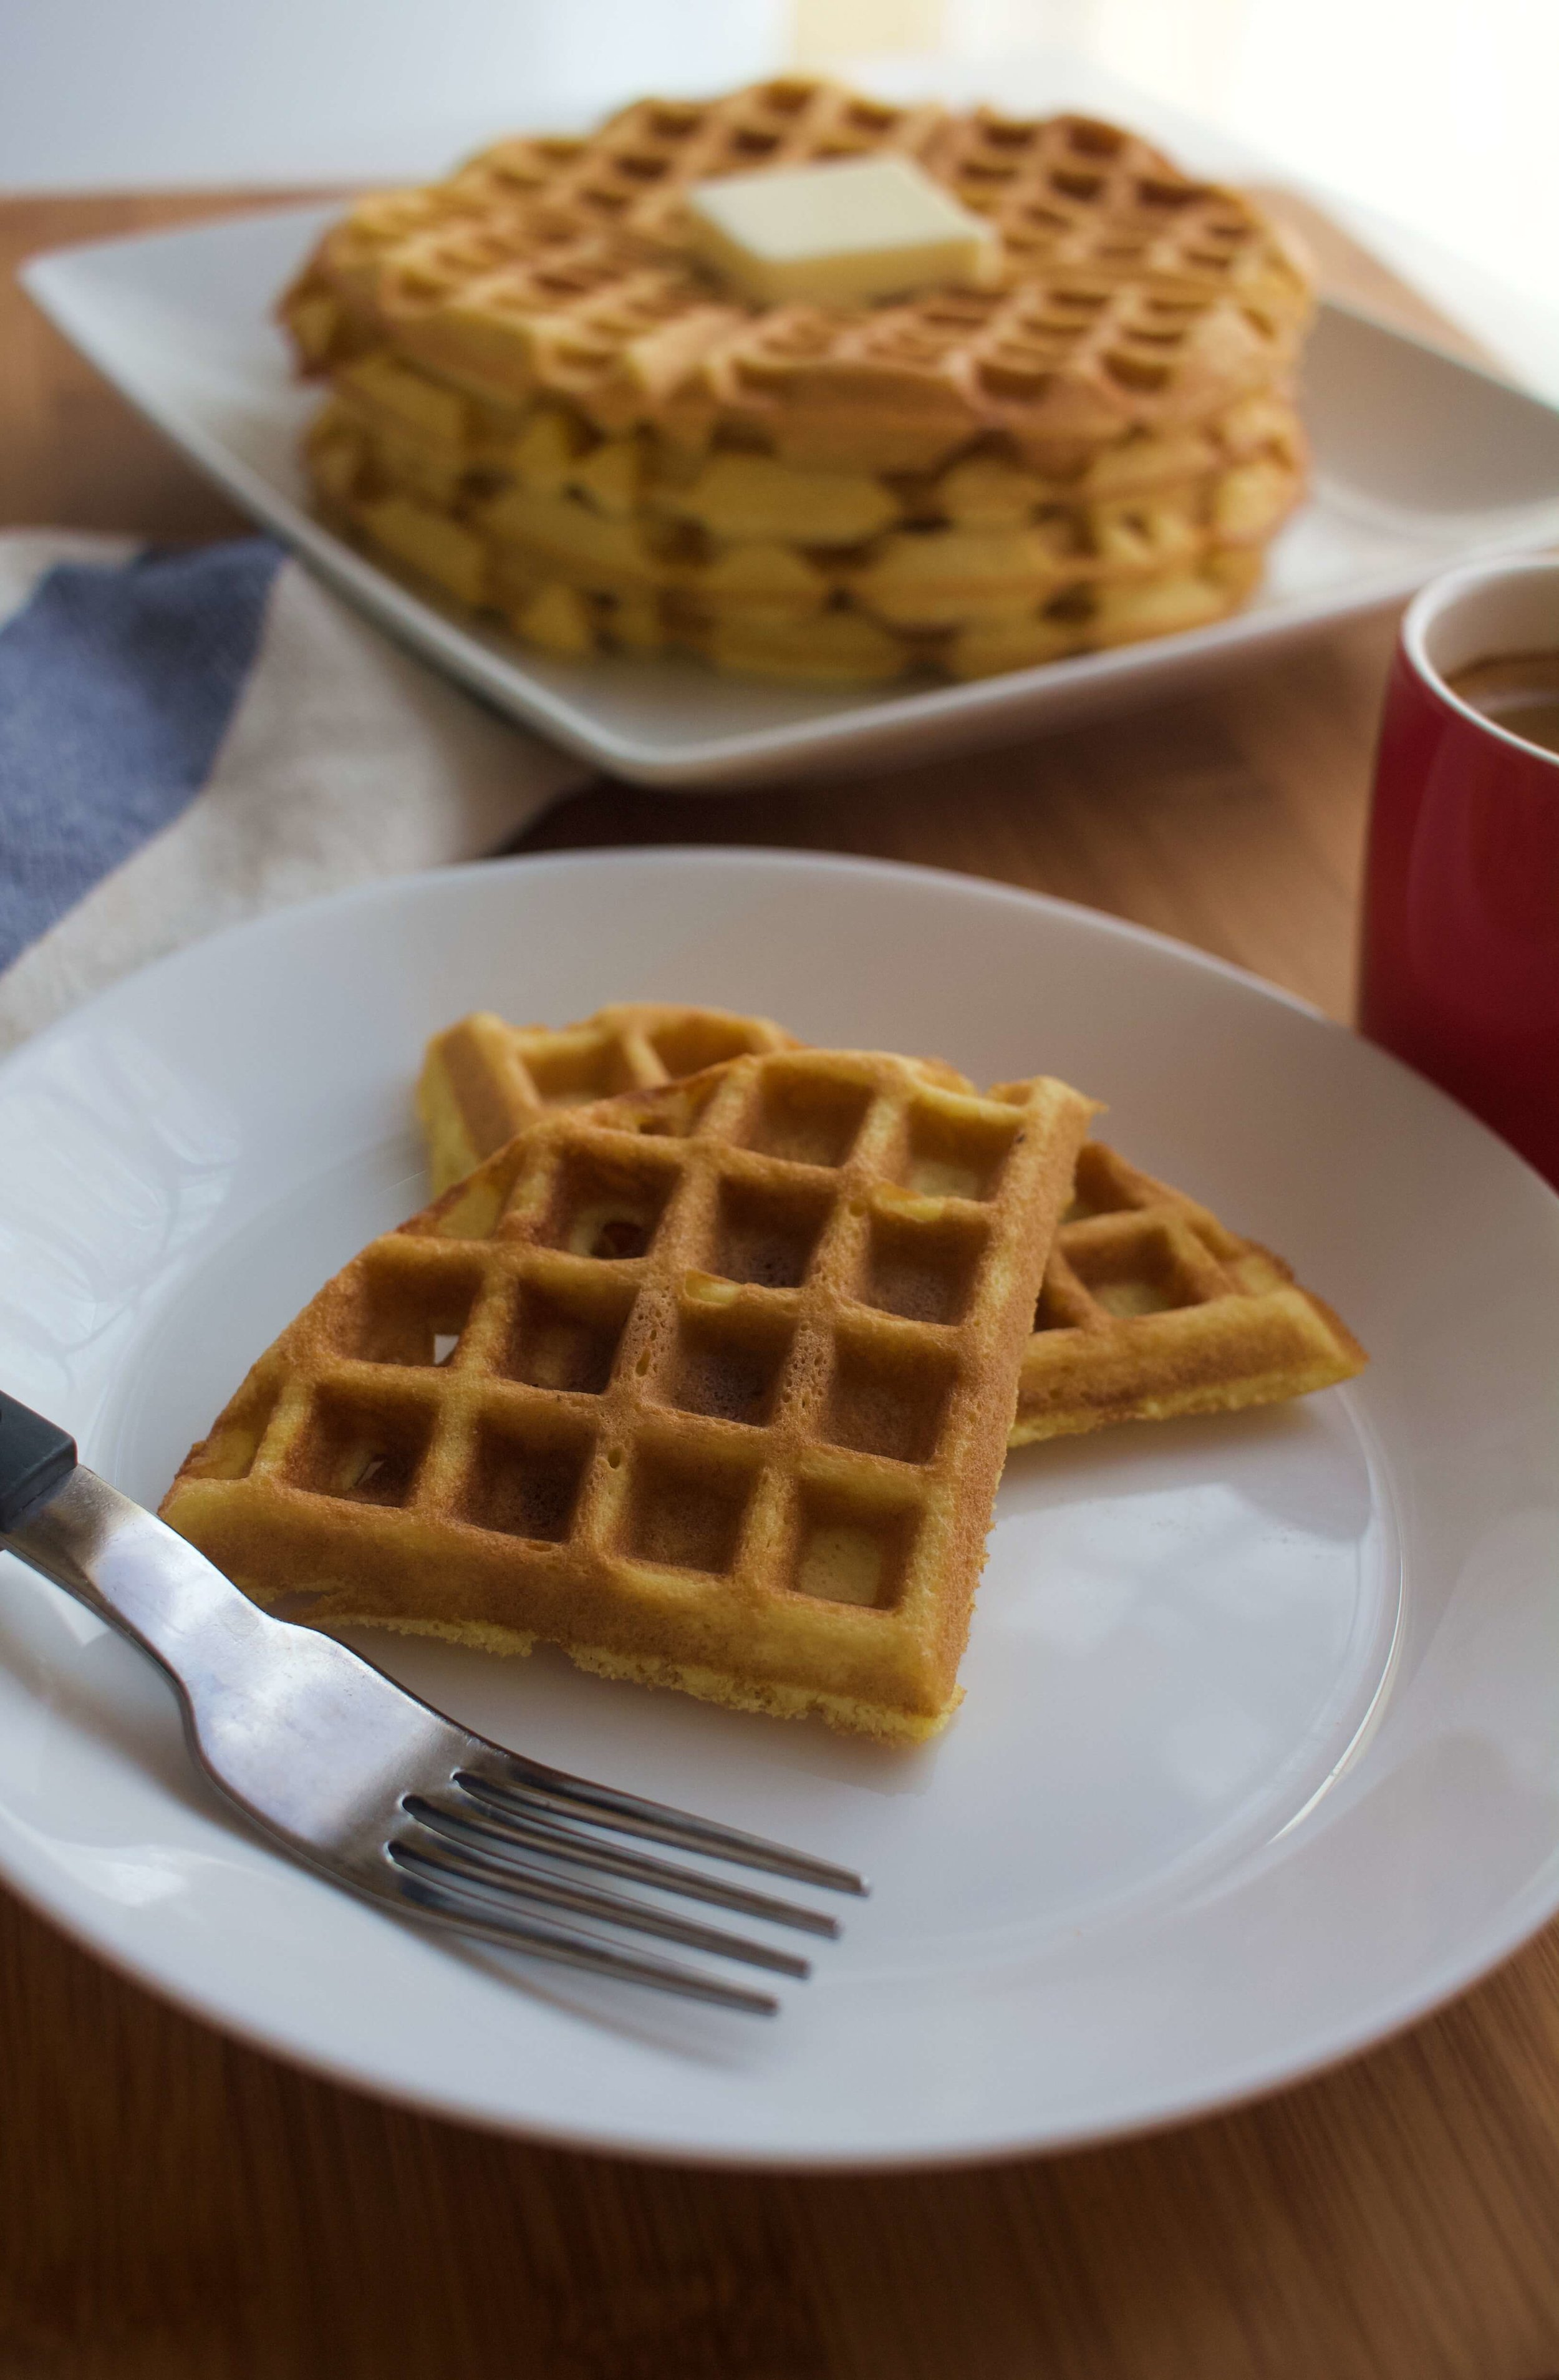 This recipe for keto coconut flour waffles takes a few simple ingredients and a quick buzz in your blender -- so breakfast is ready in a flash!